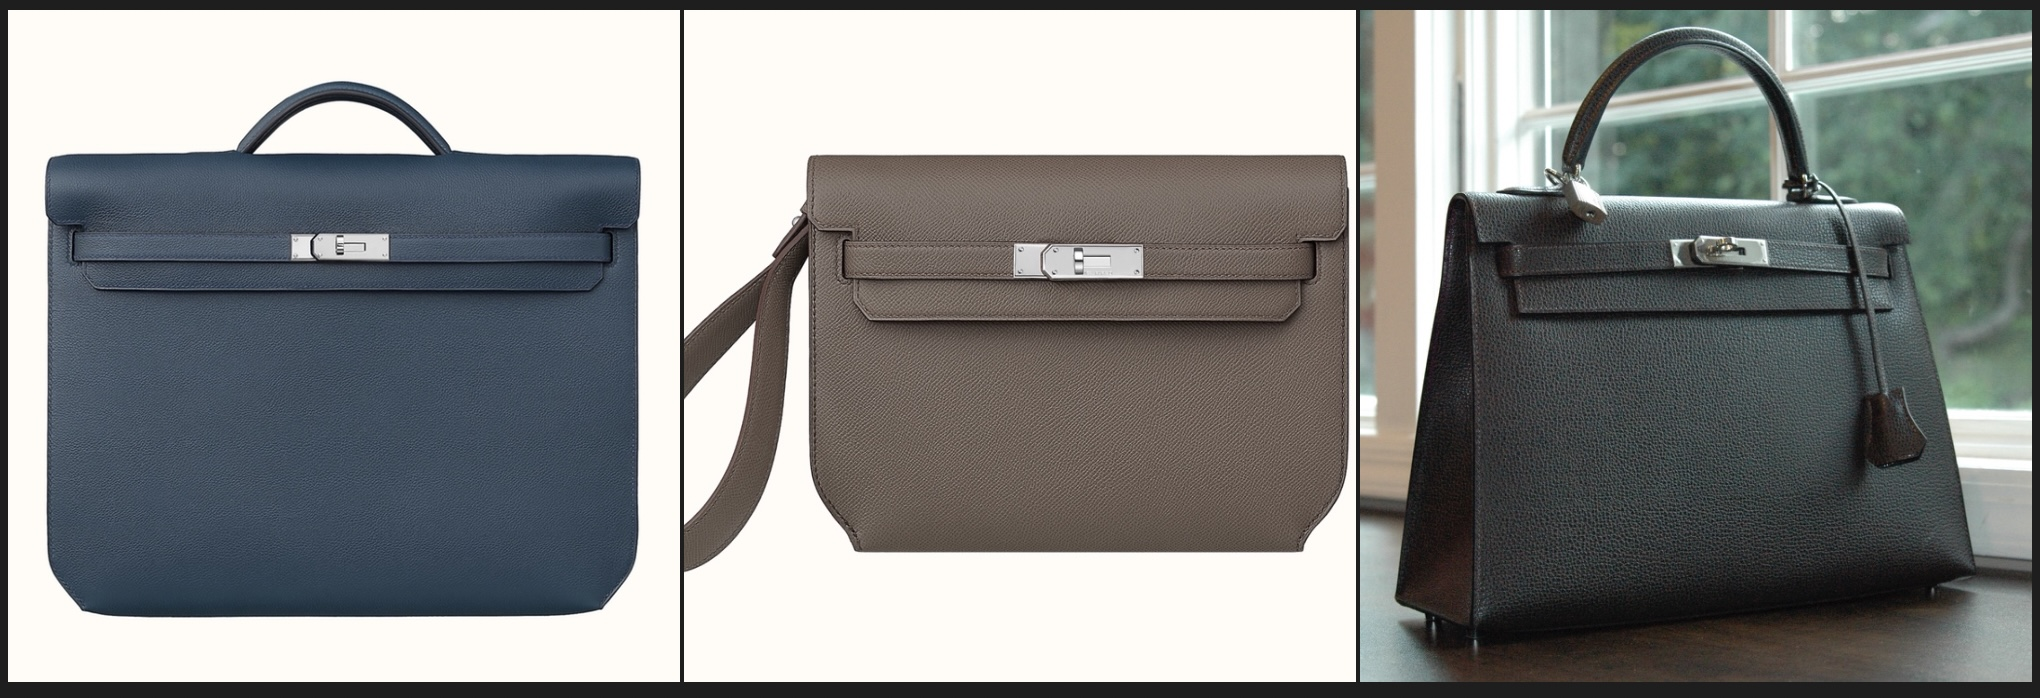 Kelly Dépêches Briefcase, Kelly Dépêches 25 Pouch, 32cm Kelly Sellier.